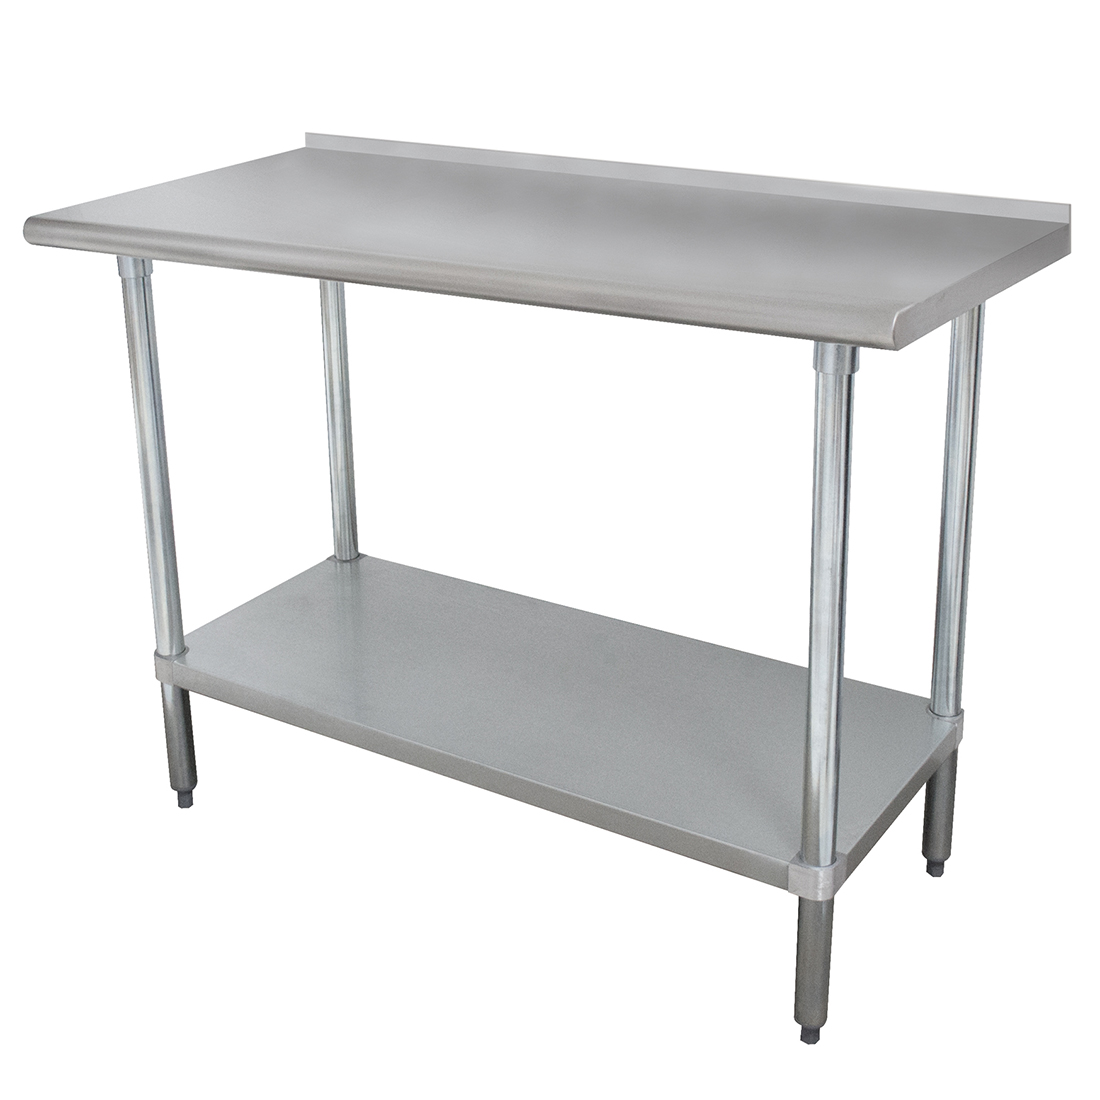 Advance Tabco FMG-247 work table,  73